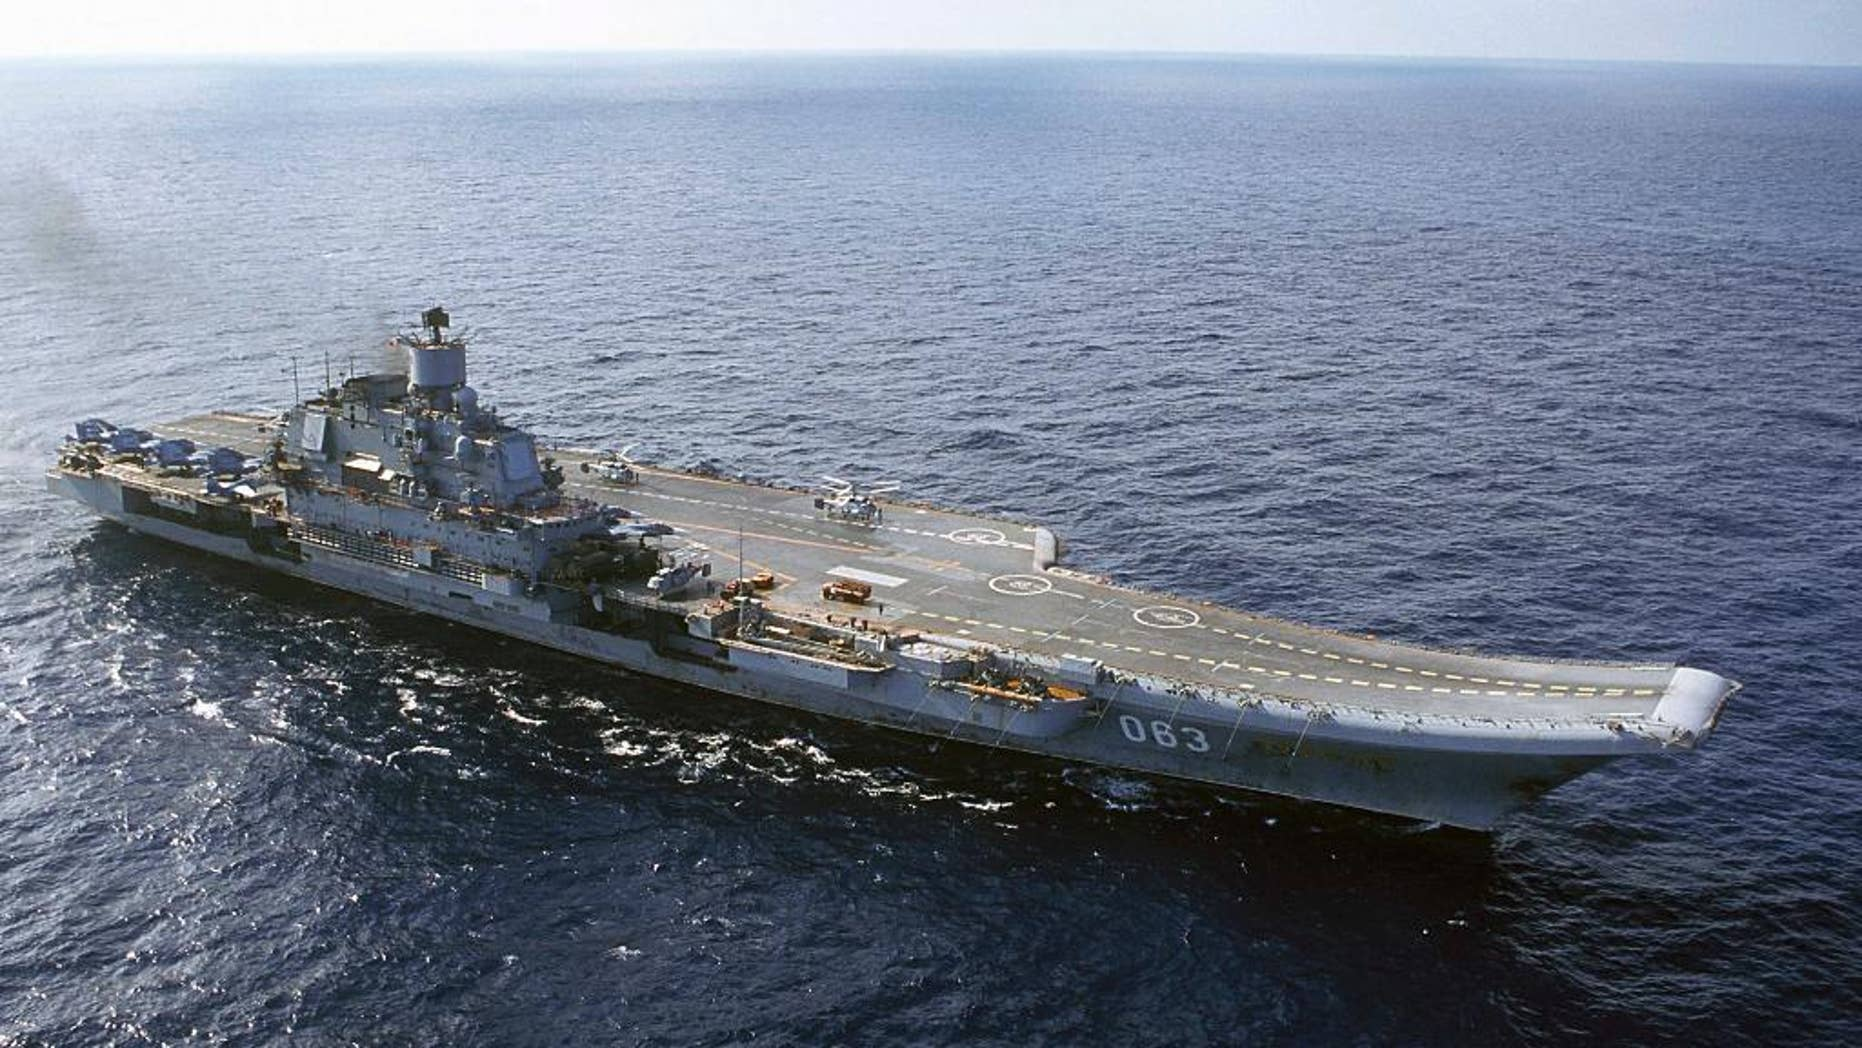 FILE - In this 2004 file photo the Admiral Kuznetsov carrier seen in the Barents Sea, Russia. Russian Defense Minister Sergei Shoigu said Wednesday, Sept. 21, 2016, that the navy will send its only aircraft carrier, the Admiral Kuznetsov, to the eastern Mediterranean to join other Russian ships deployed near the Syrian shores.(AP Photo, file)